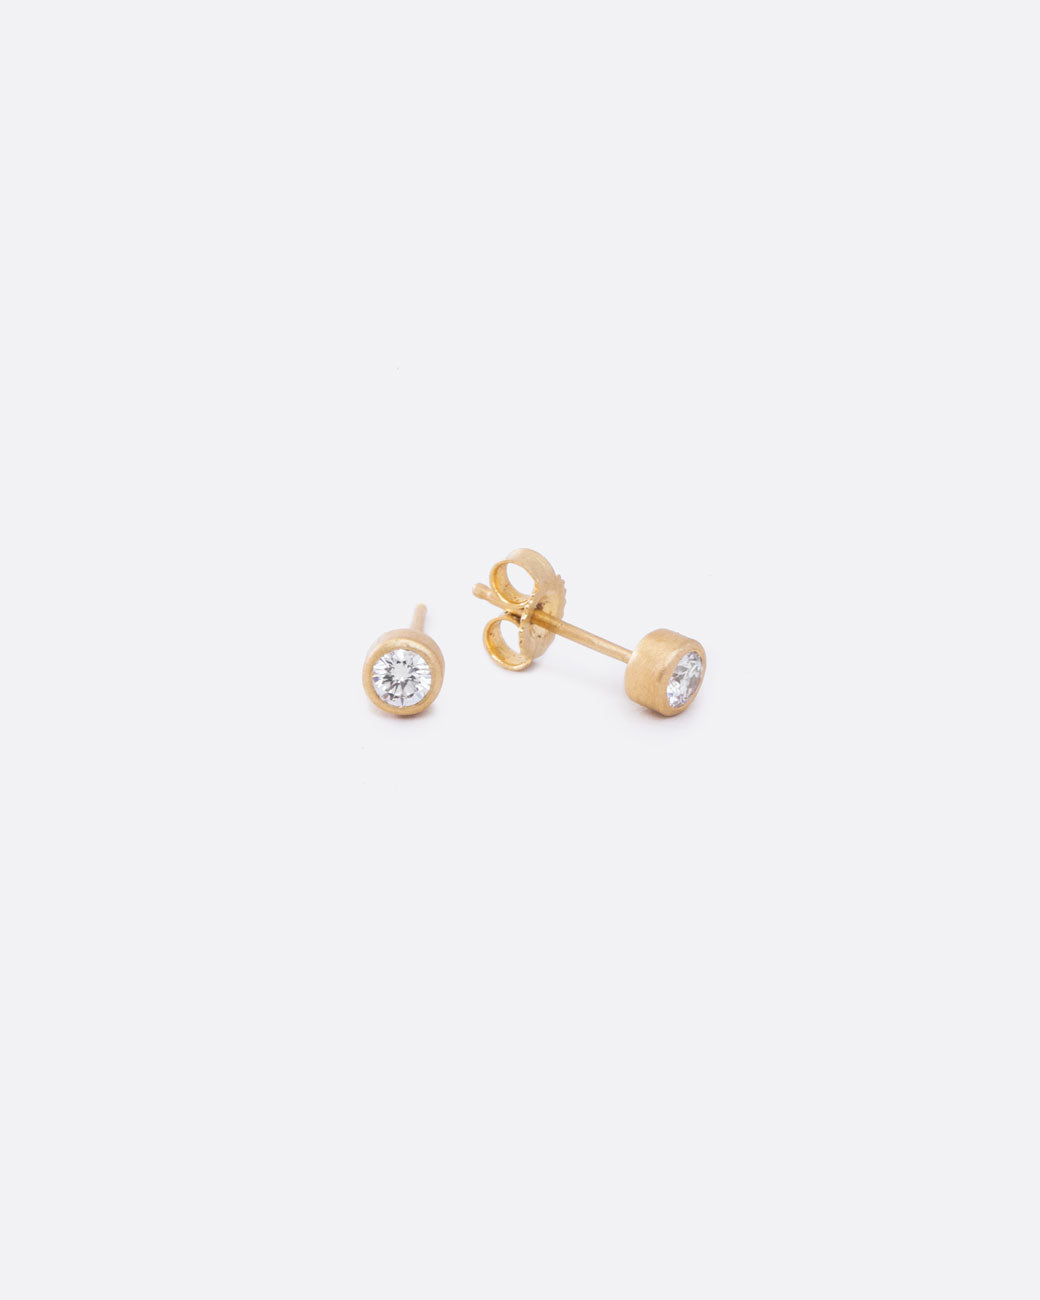 aa74551af a pair of diamond stud earrings with yellow gold bezel settings. the one on  the